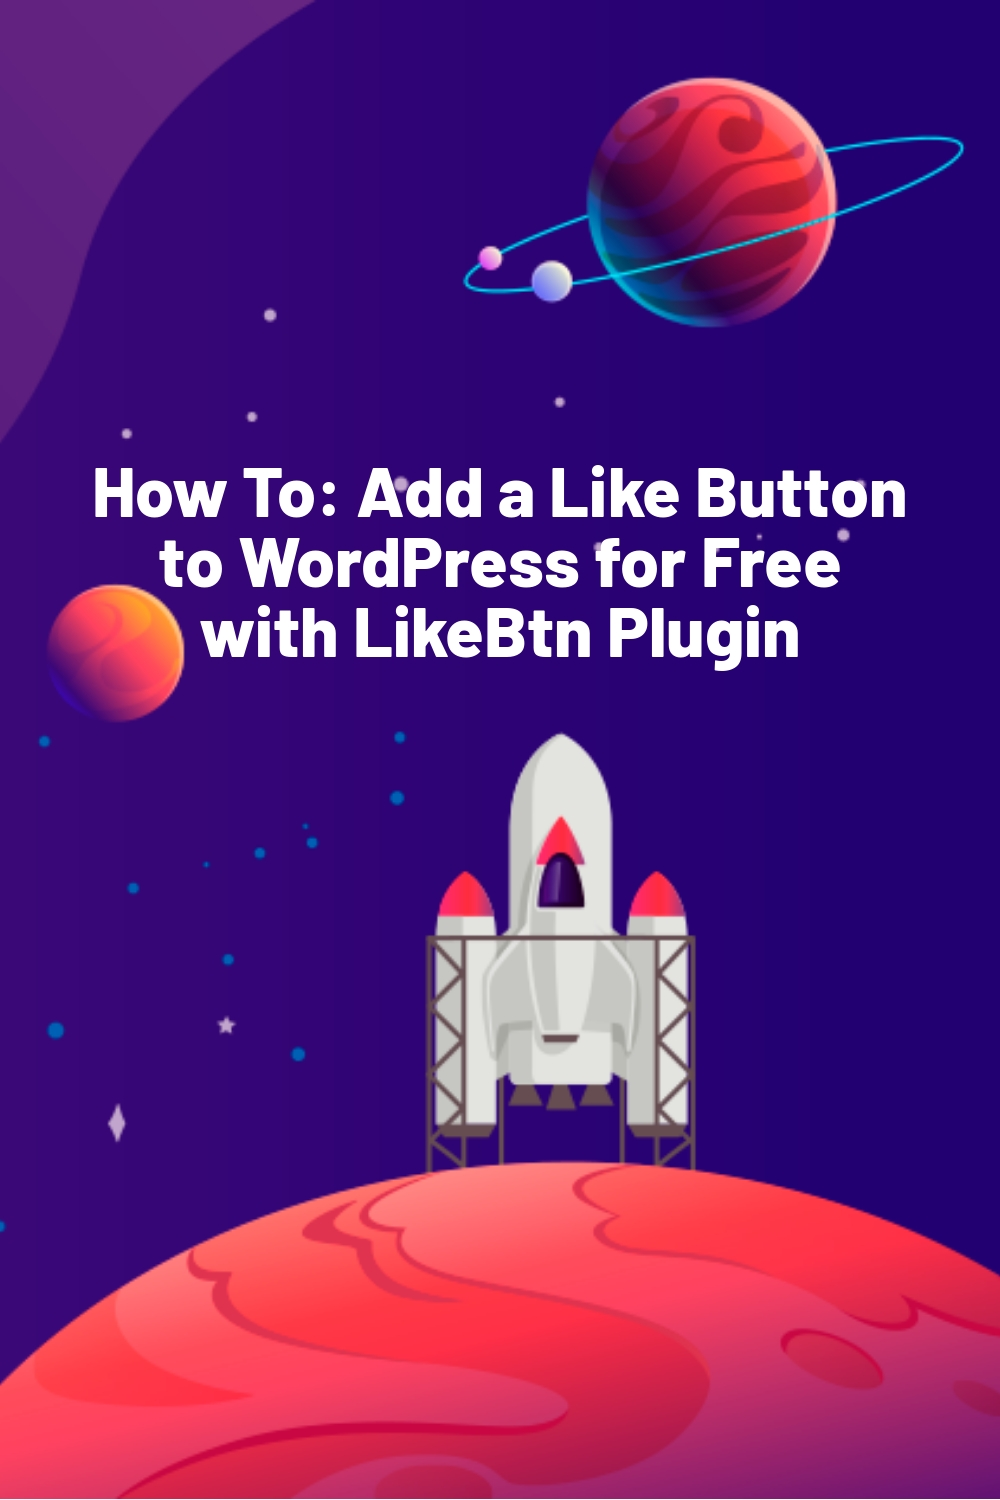 How To: Add a Like Button to WordPress for Free with LikeBtn Plugin